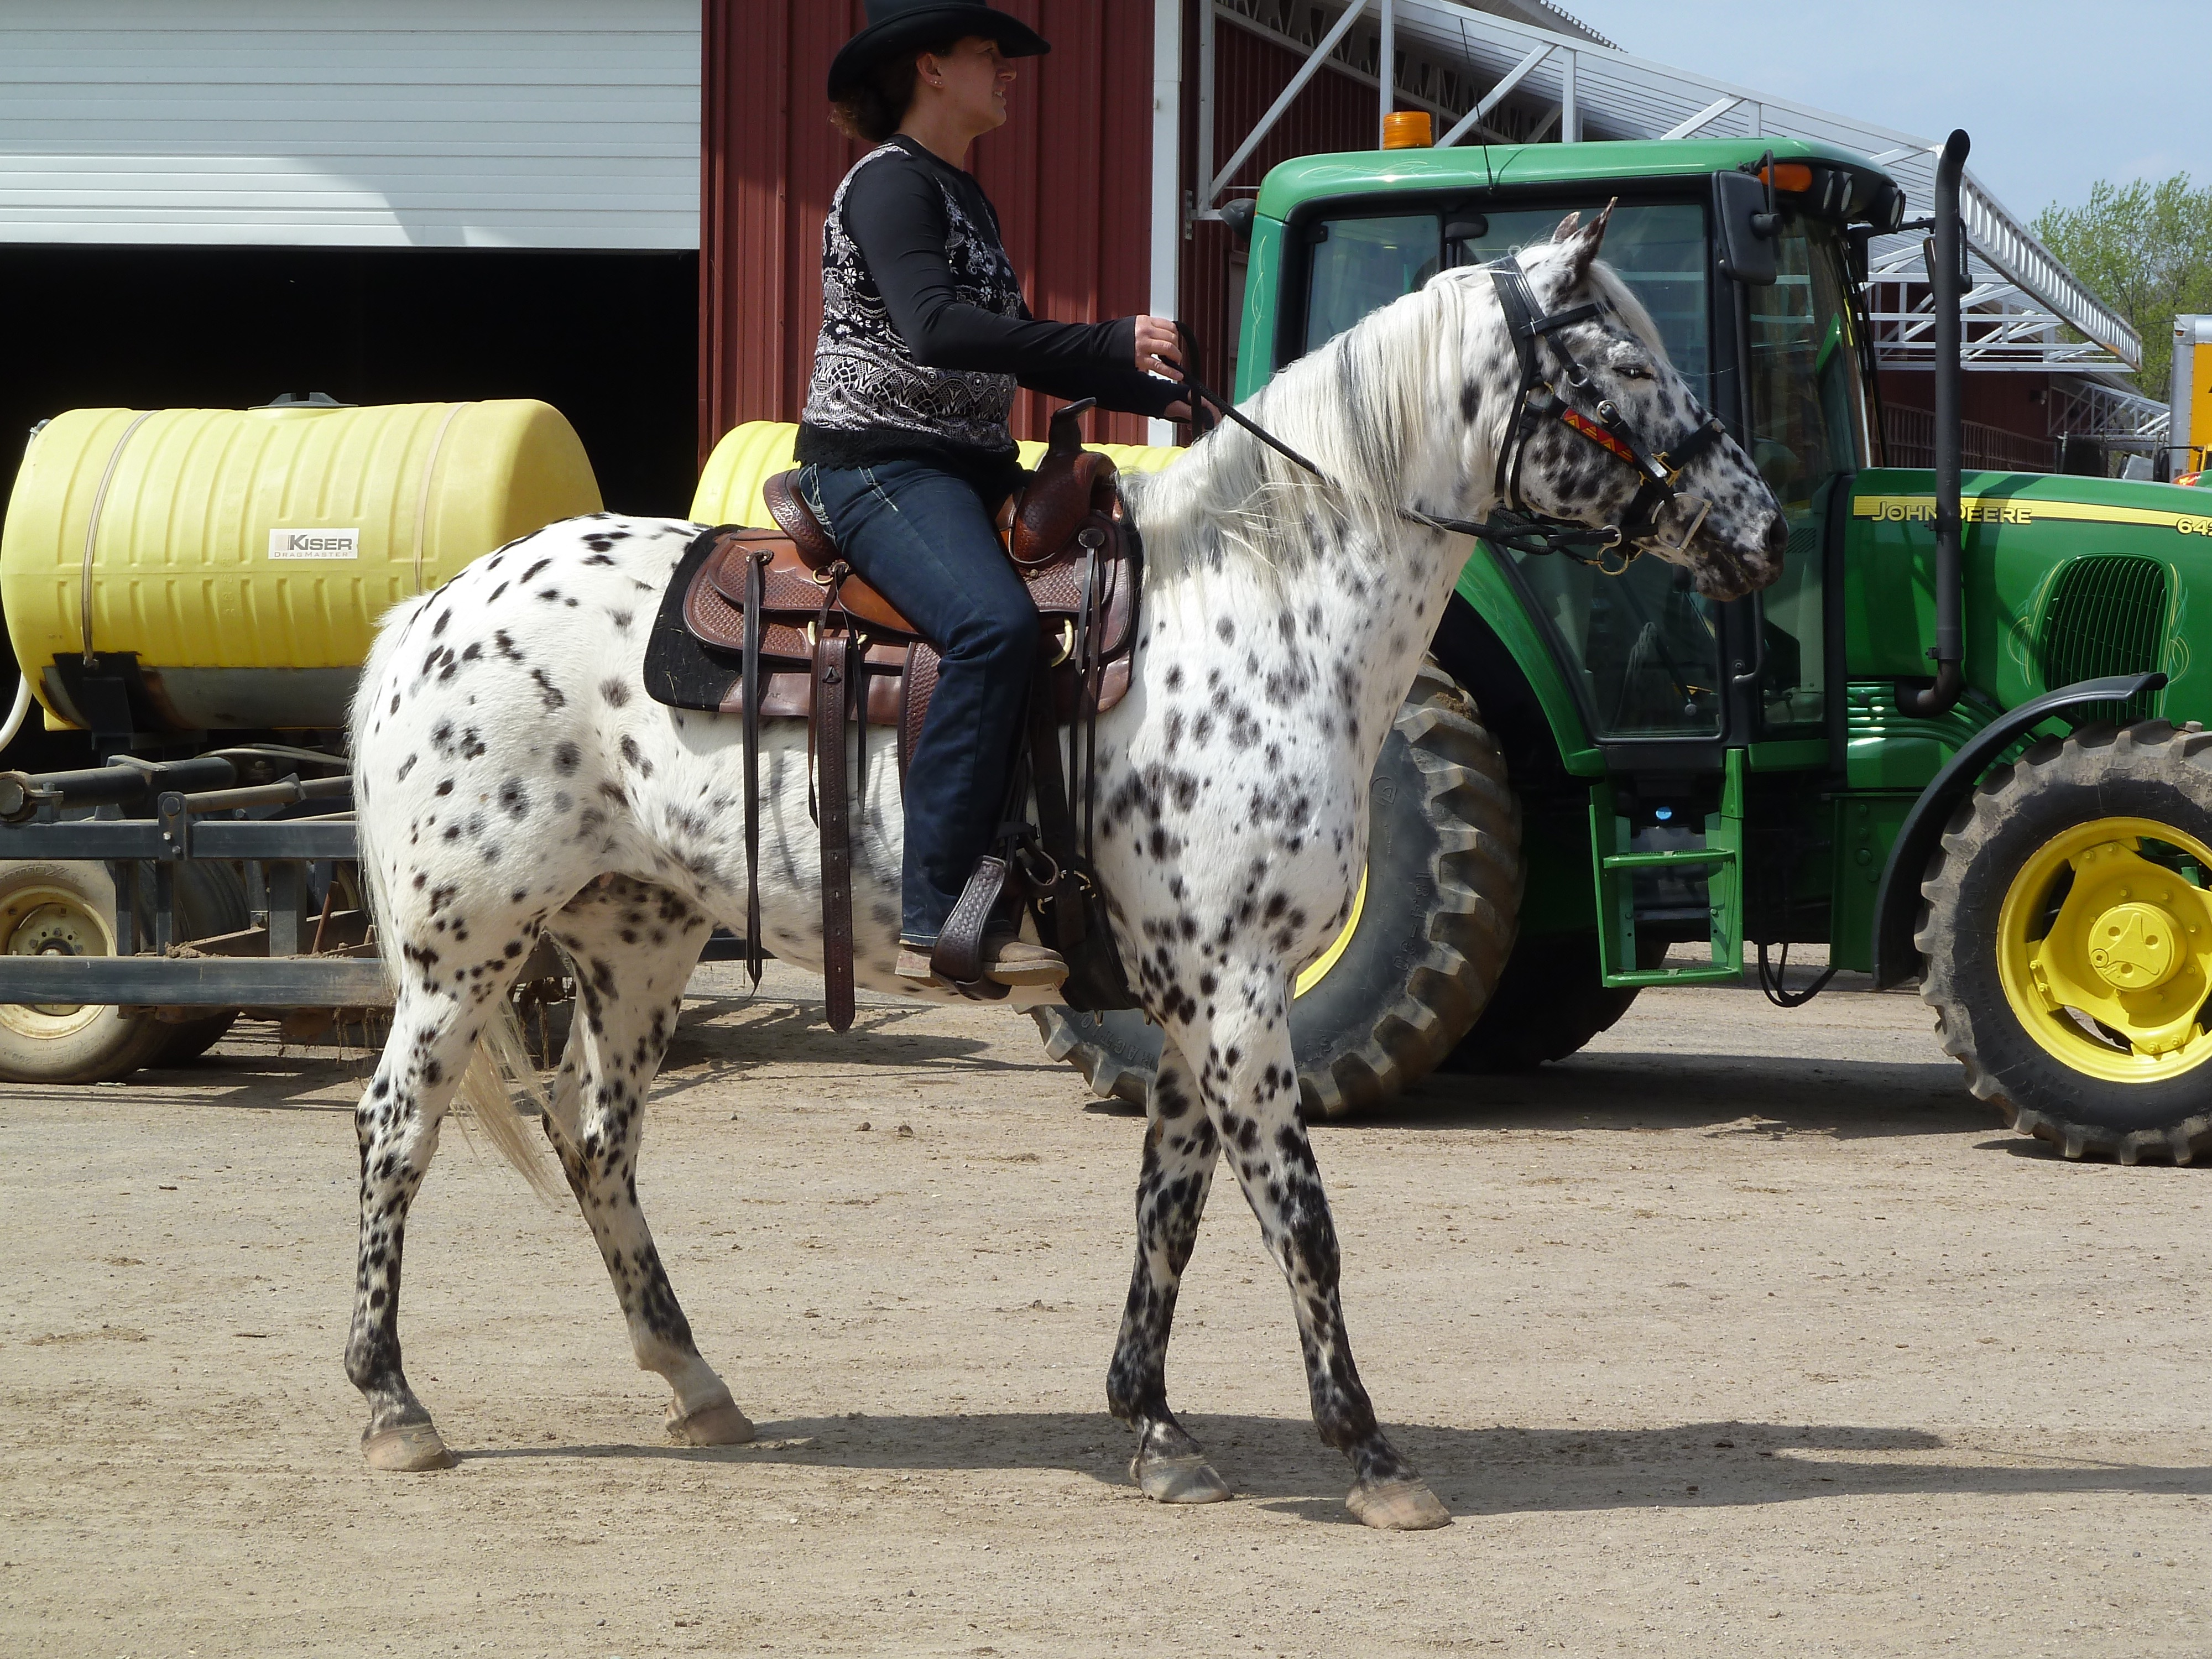 Minnesota Horse Expo 2016 Highlghts = 20 Years